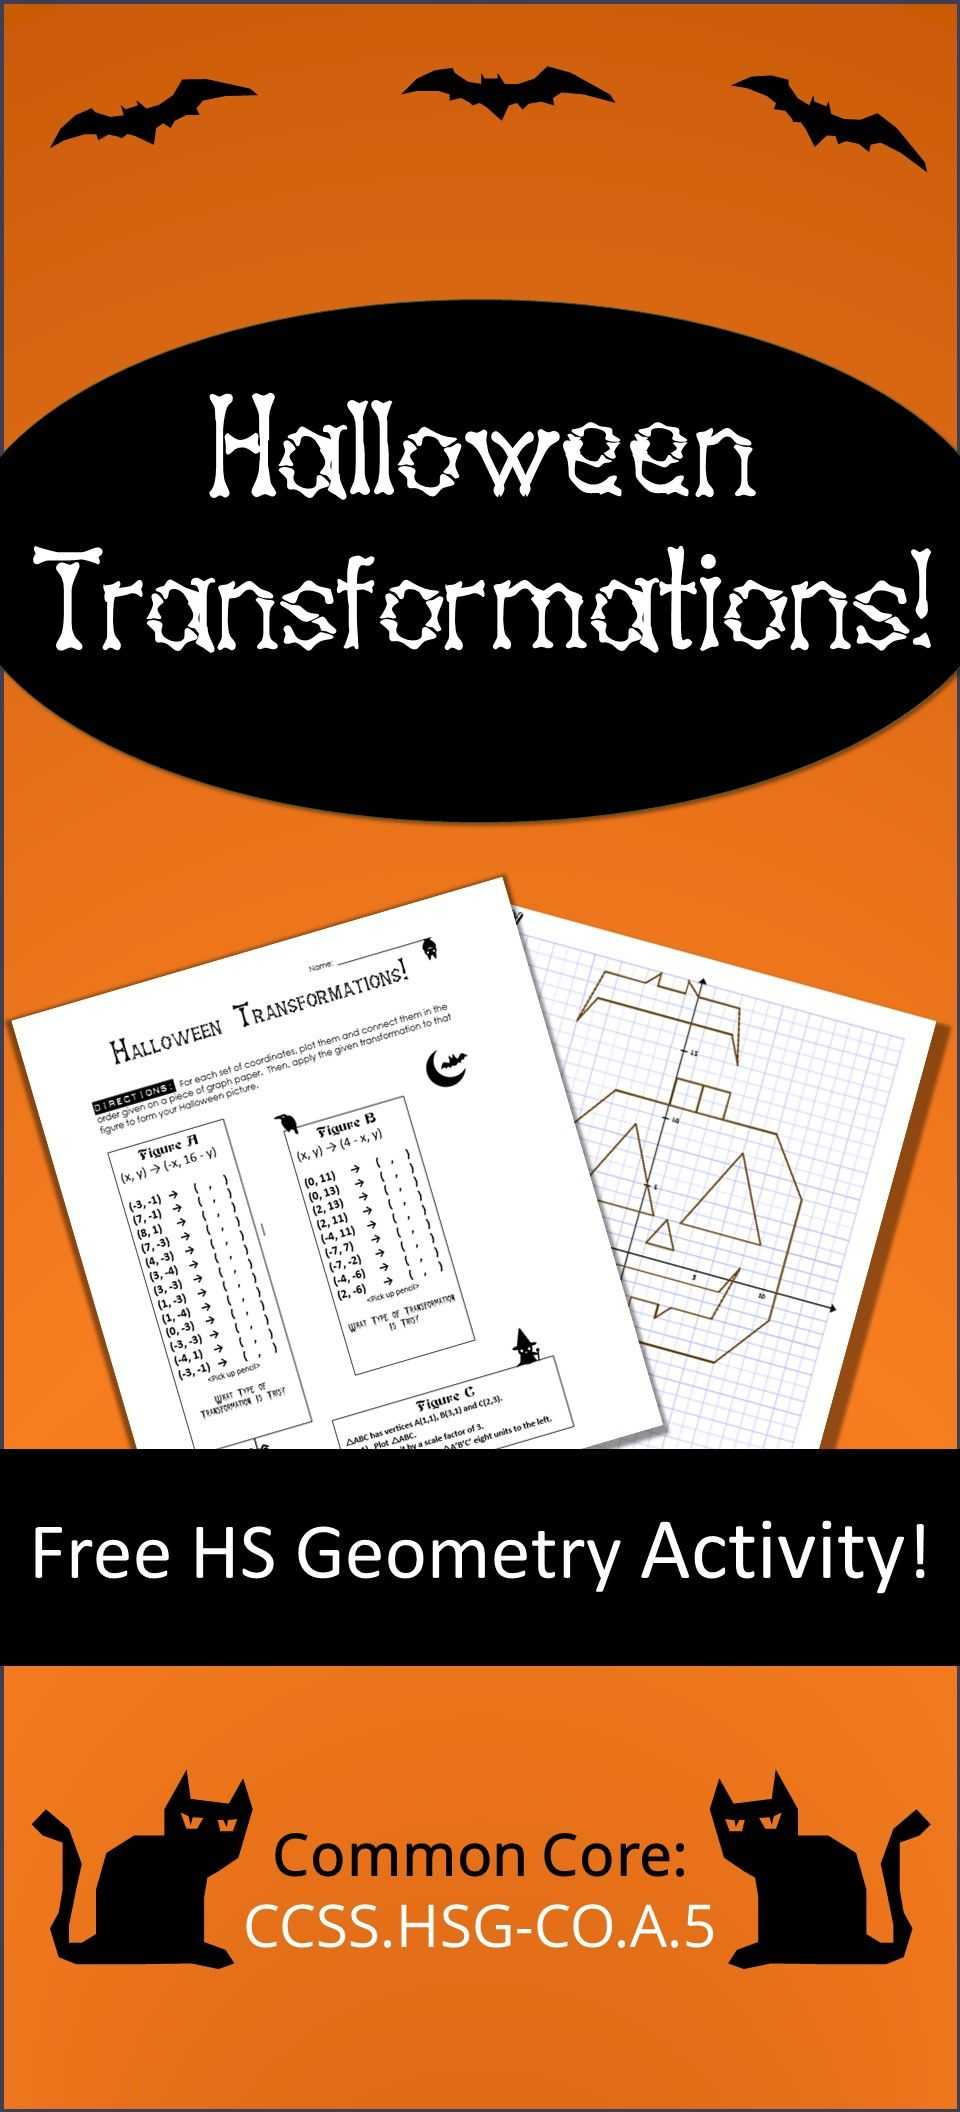 Translation Rotation Reflection Worksheet Answers as Well as Halloween Transformations Hs Geometry Activity – Aligned to Mon